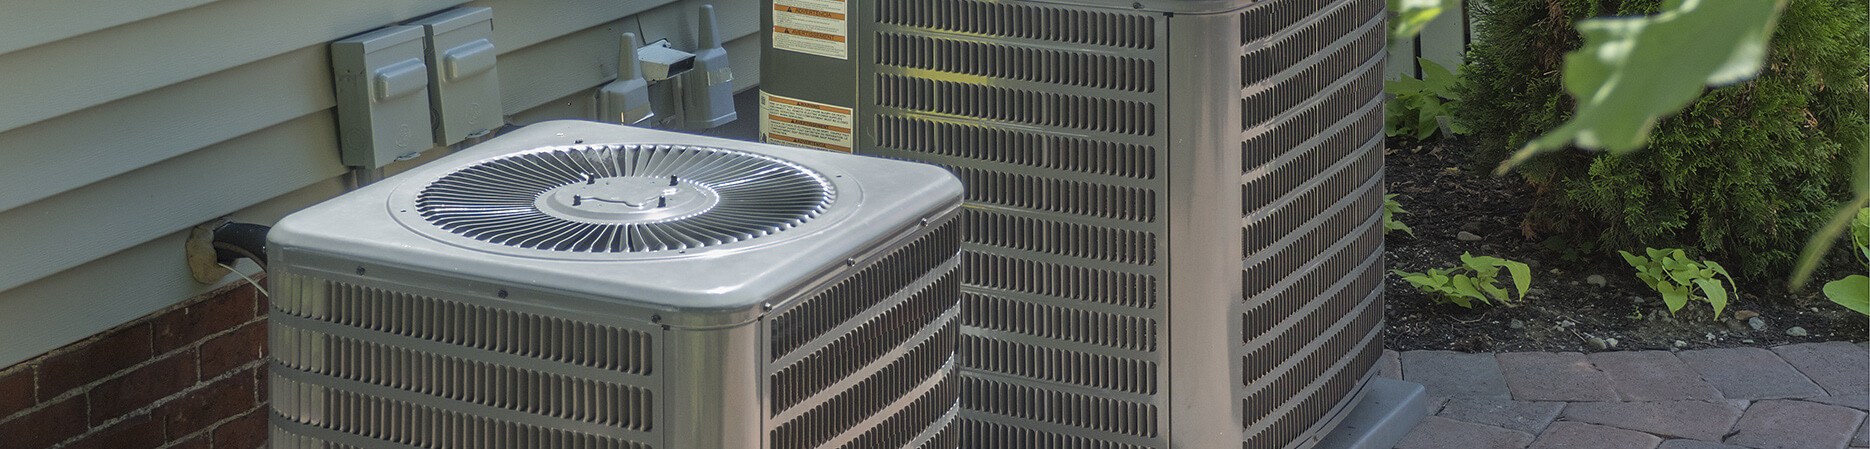 Ottawa HVAC Company, HVAC Contractor and Air Conditioning Services